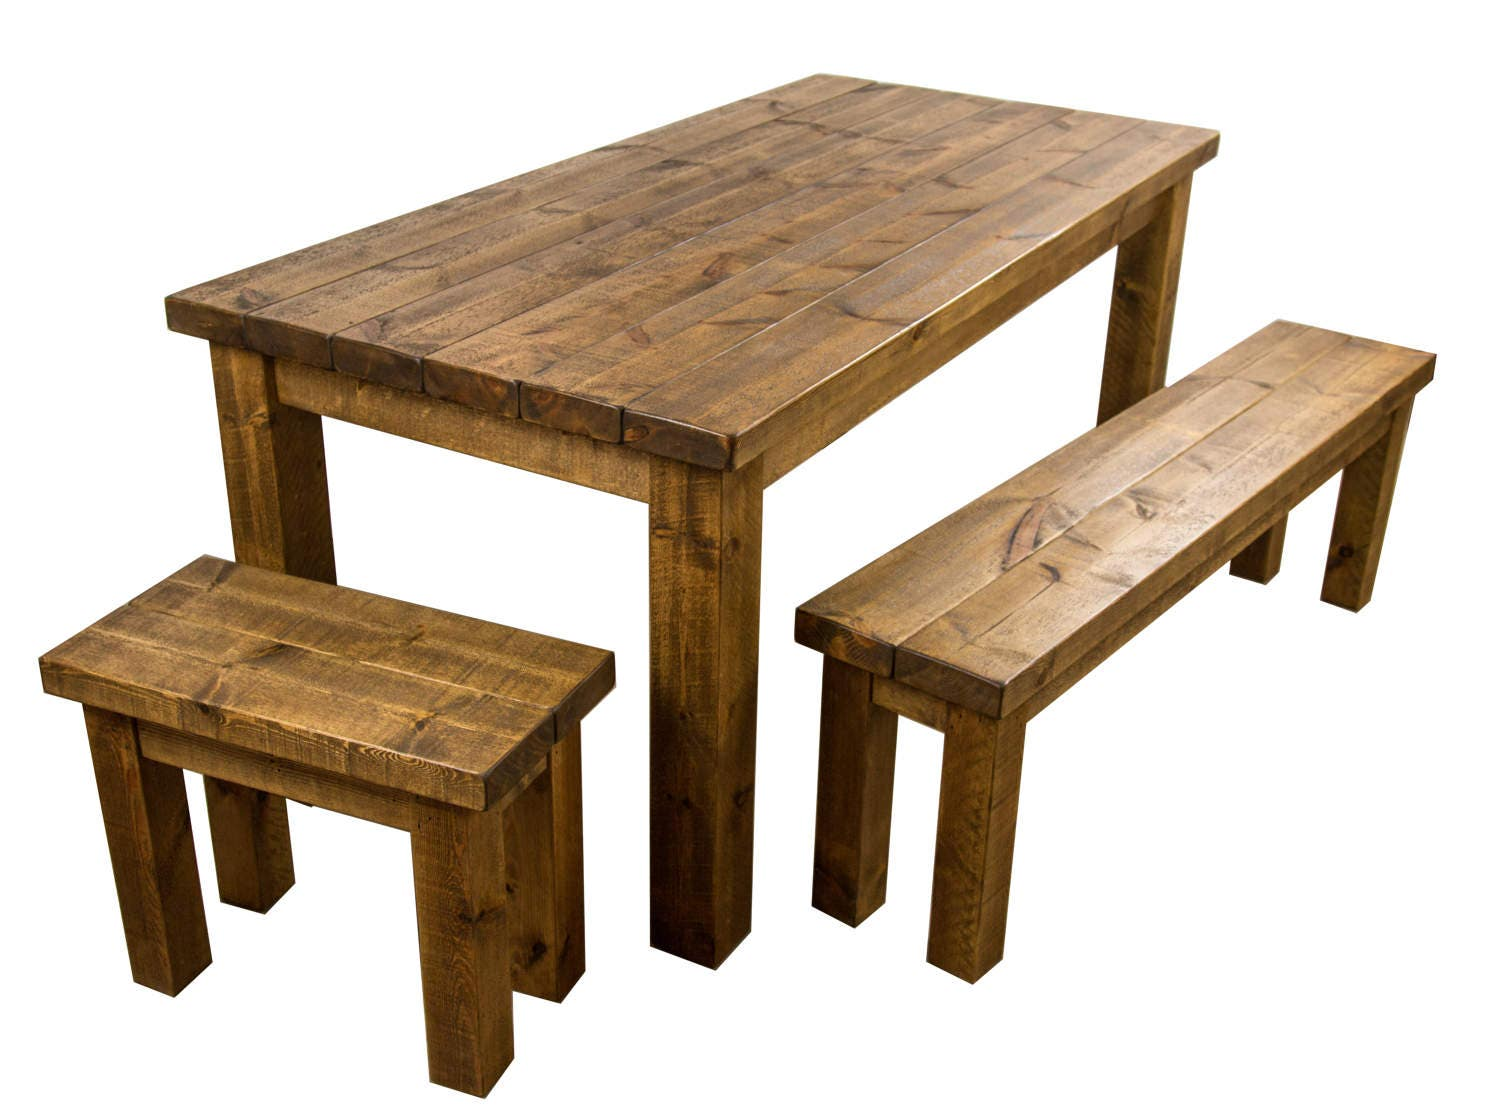 Rustic wooden farmhouse dining table with benches Solid wood Medium oak finish Free delivery  installation to UK Mainland (tcs apply)